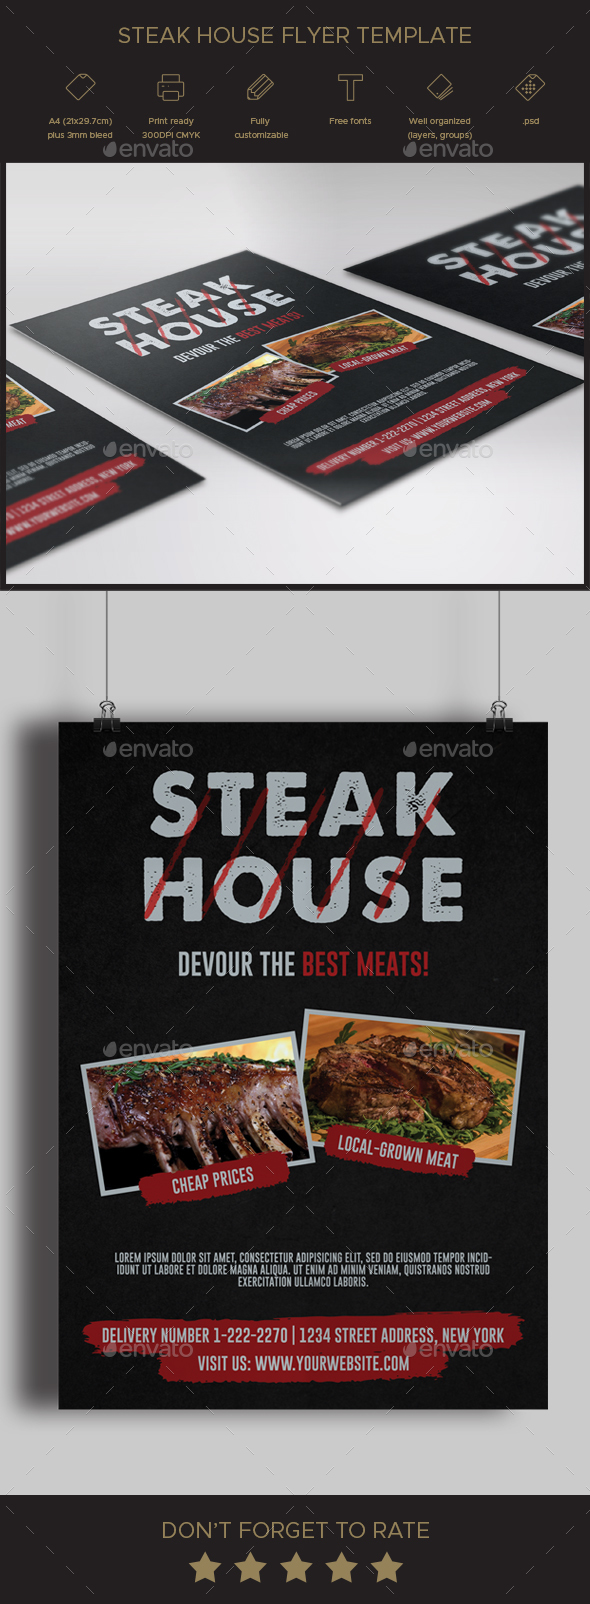 Steak House Flyer Template - Restaurant Flyers